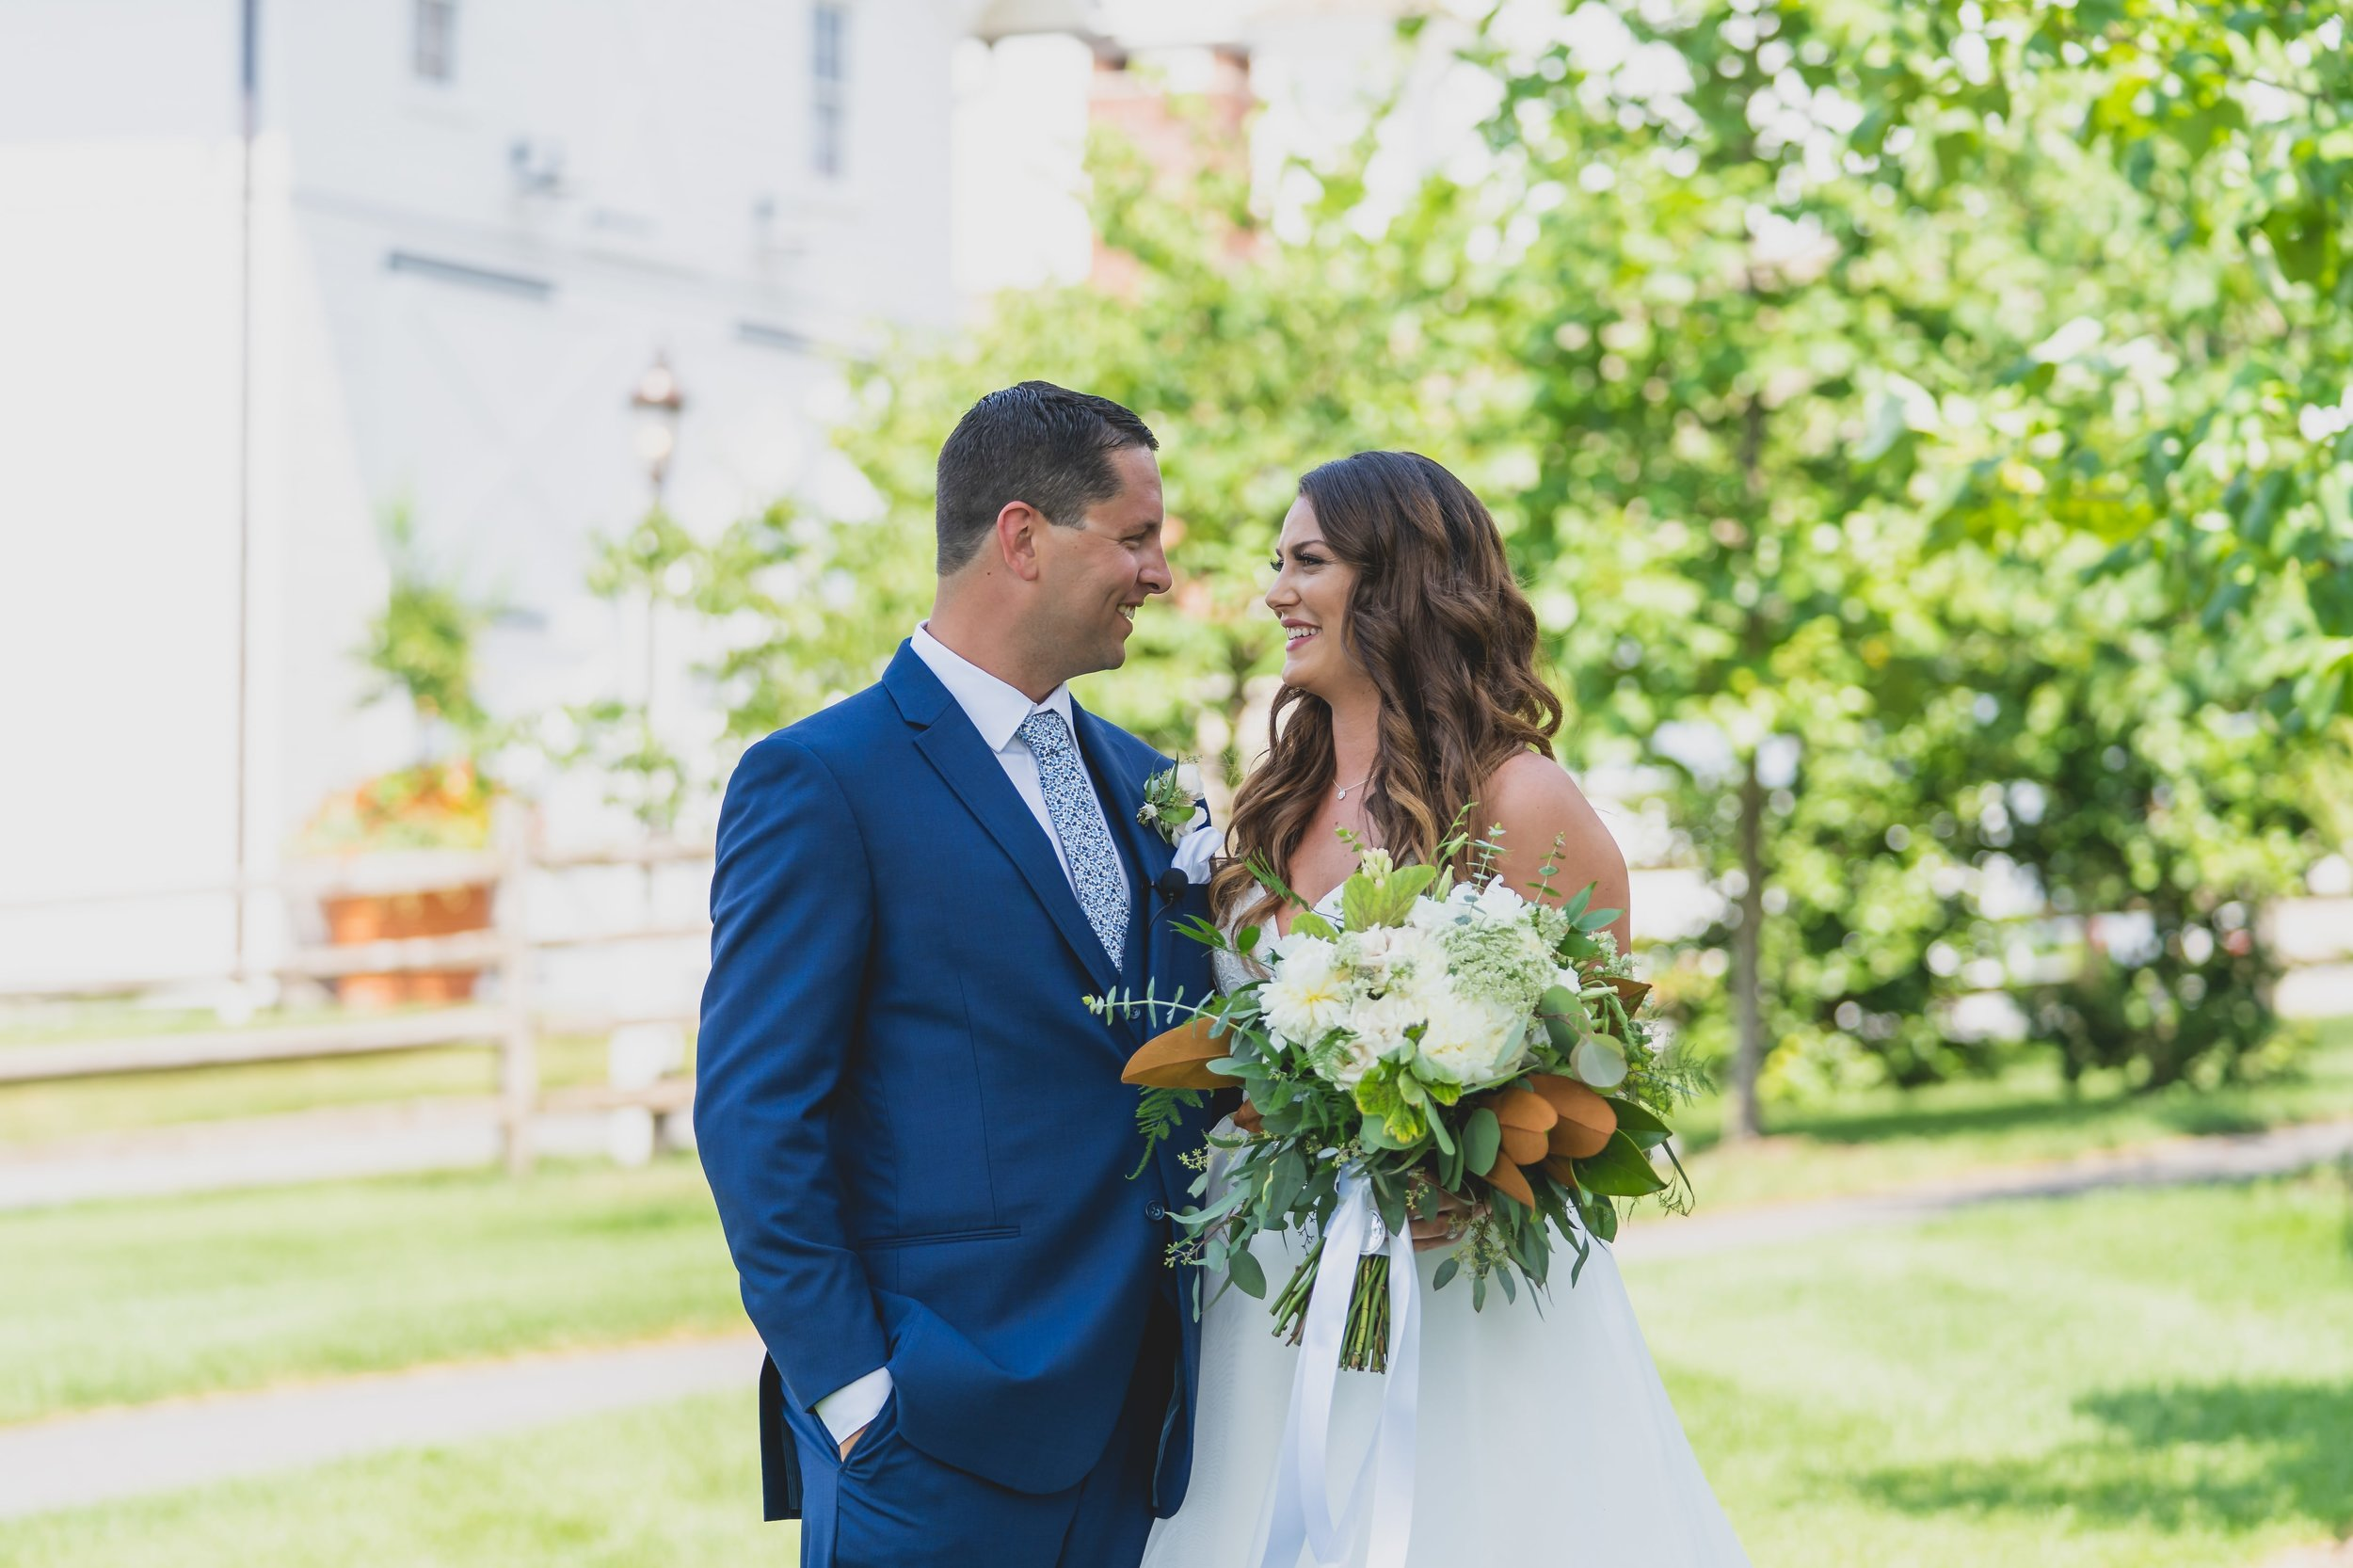 Bride and groom smiling at one another outside their venue on a sunny summer day.